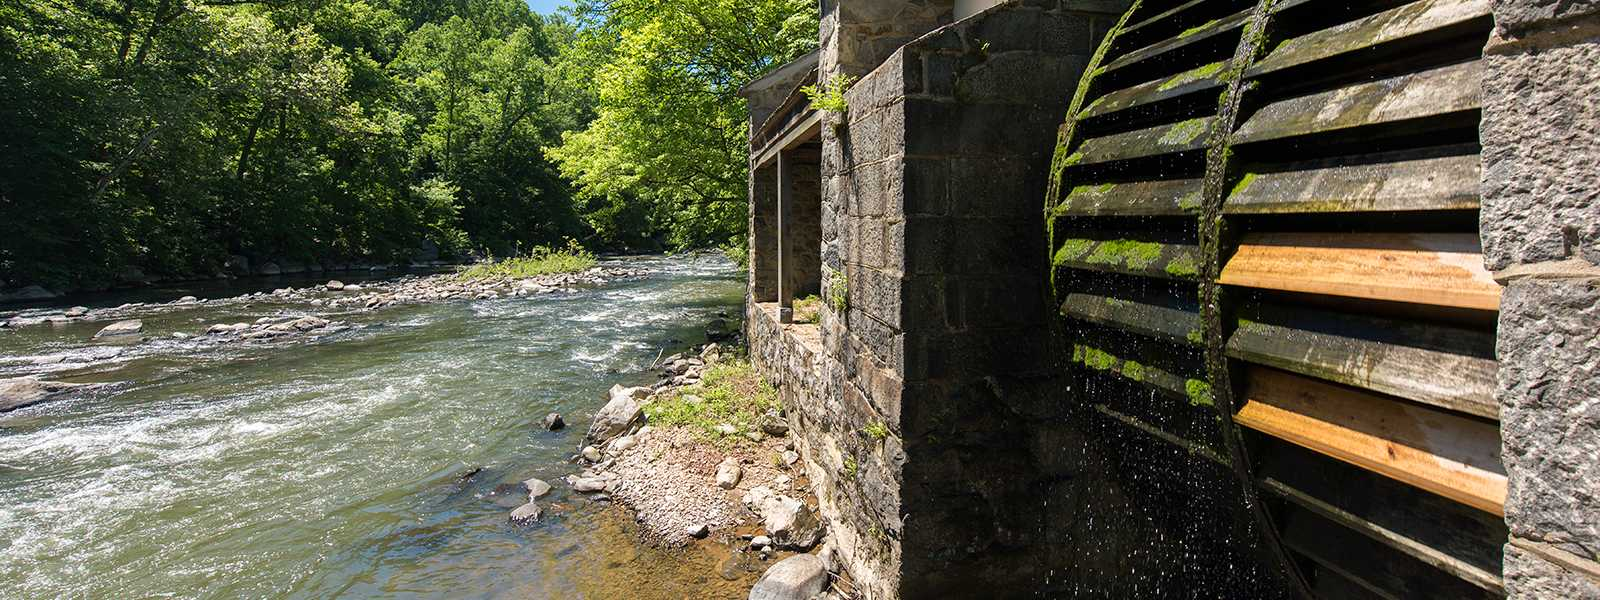 Hagley Water Wheel on the Brandywine River